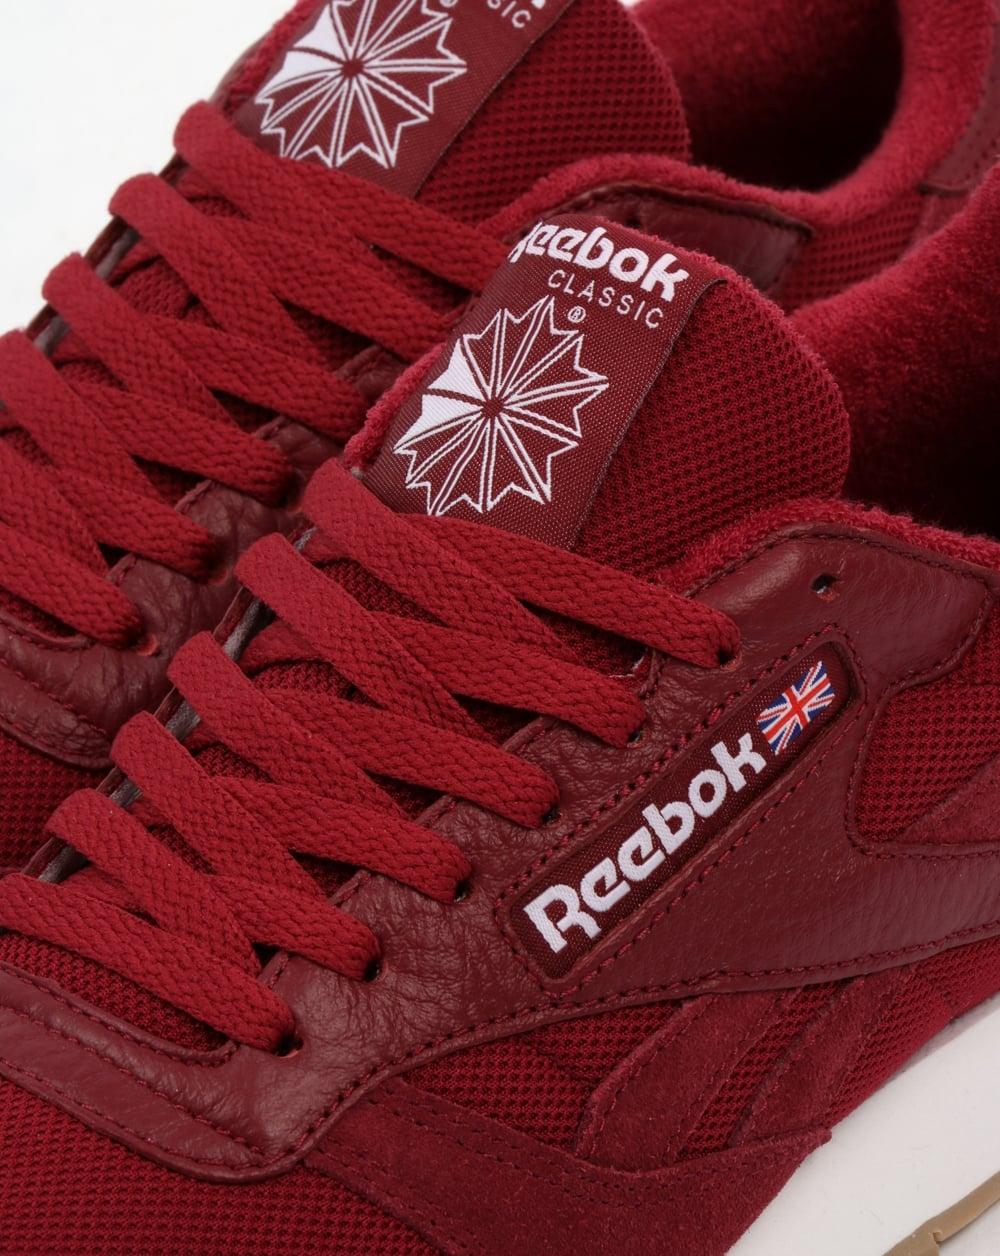 b4f5fbe96493 Reebok Classic Leather ESTL Trainers Urban Maroon White